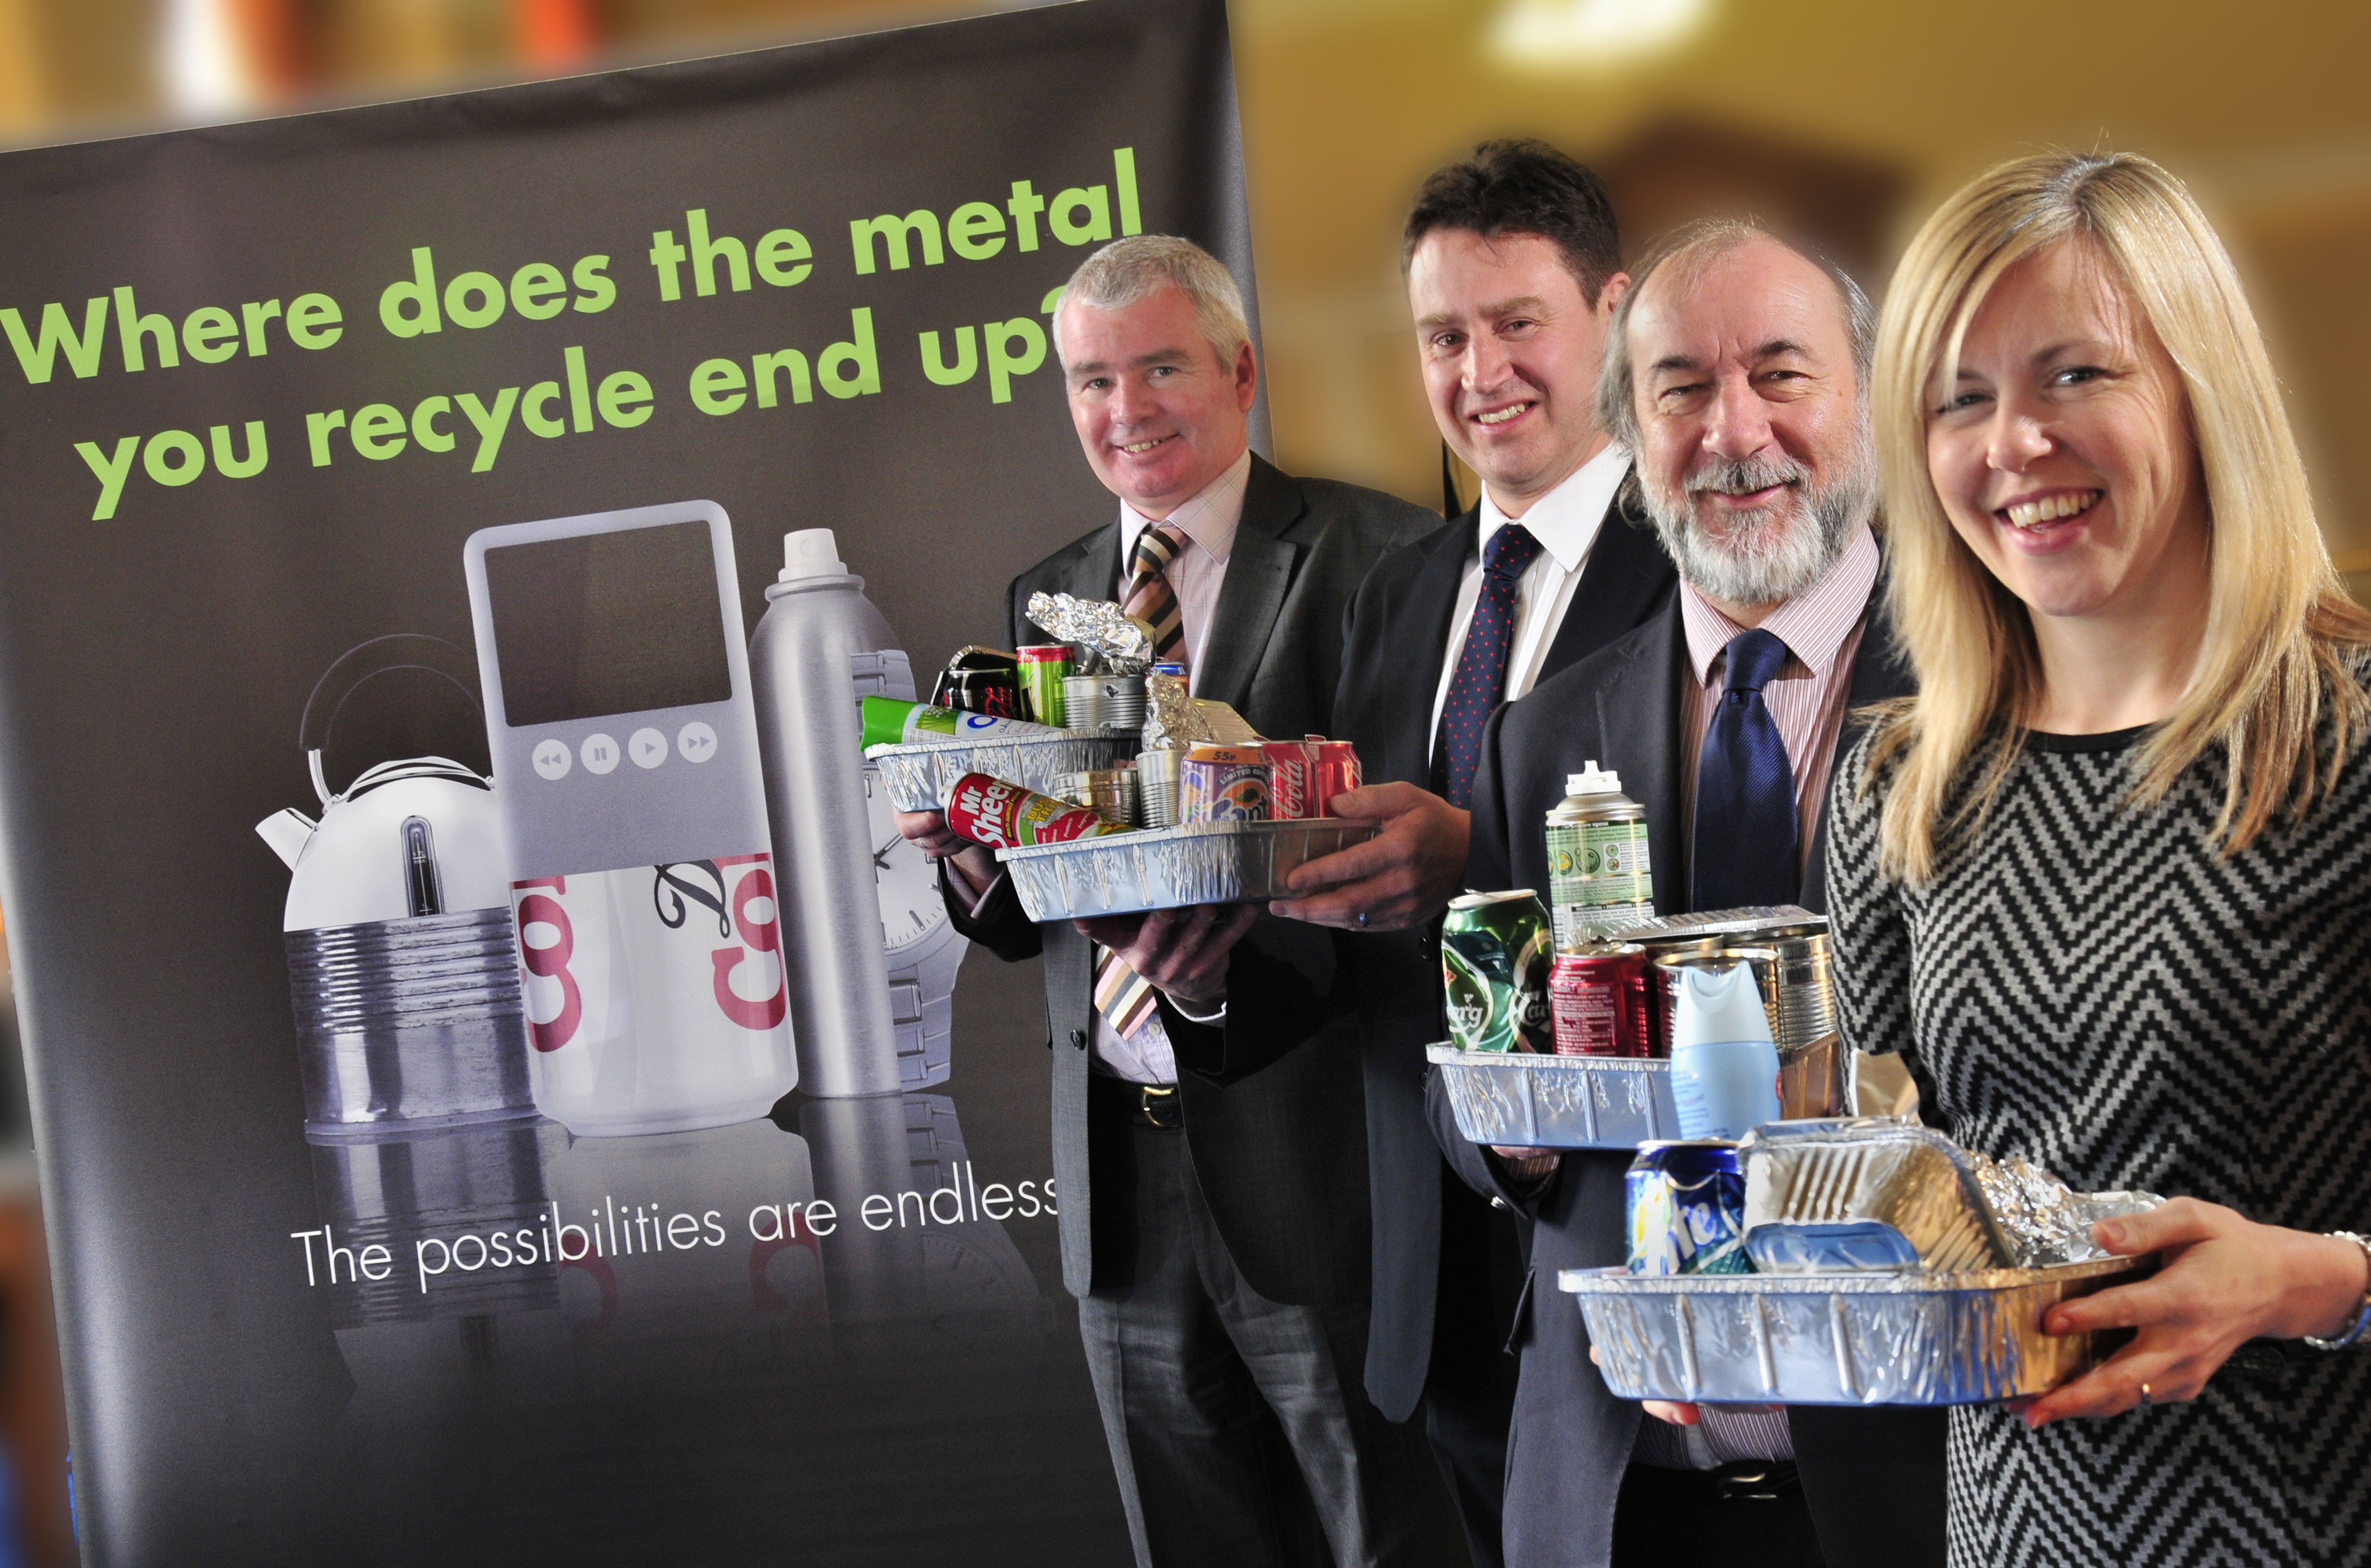 From left to right: Rick Hindley, Executive Director, Alupro; Mike Stafford, Regional Manager, Viridor; •	Cllr Derek Osbourne, Chair of the Joint Waste Committee and Rachel Lewis, Chair of the South London Waste Partnership Management Group